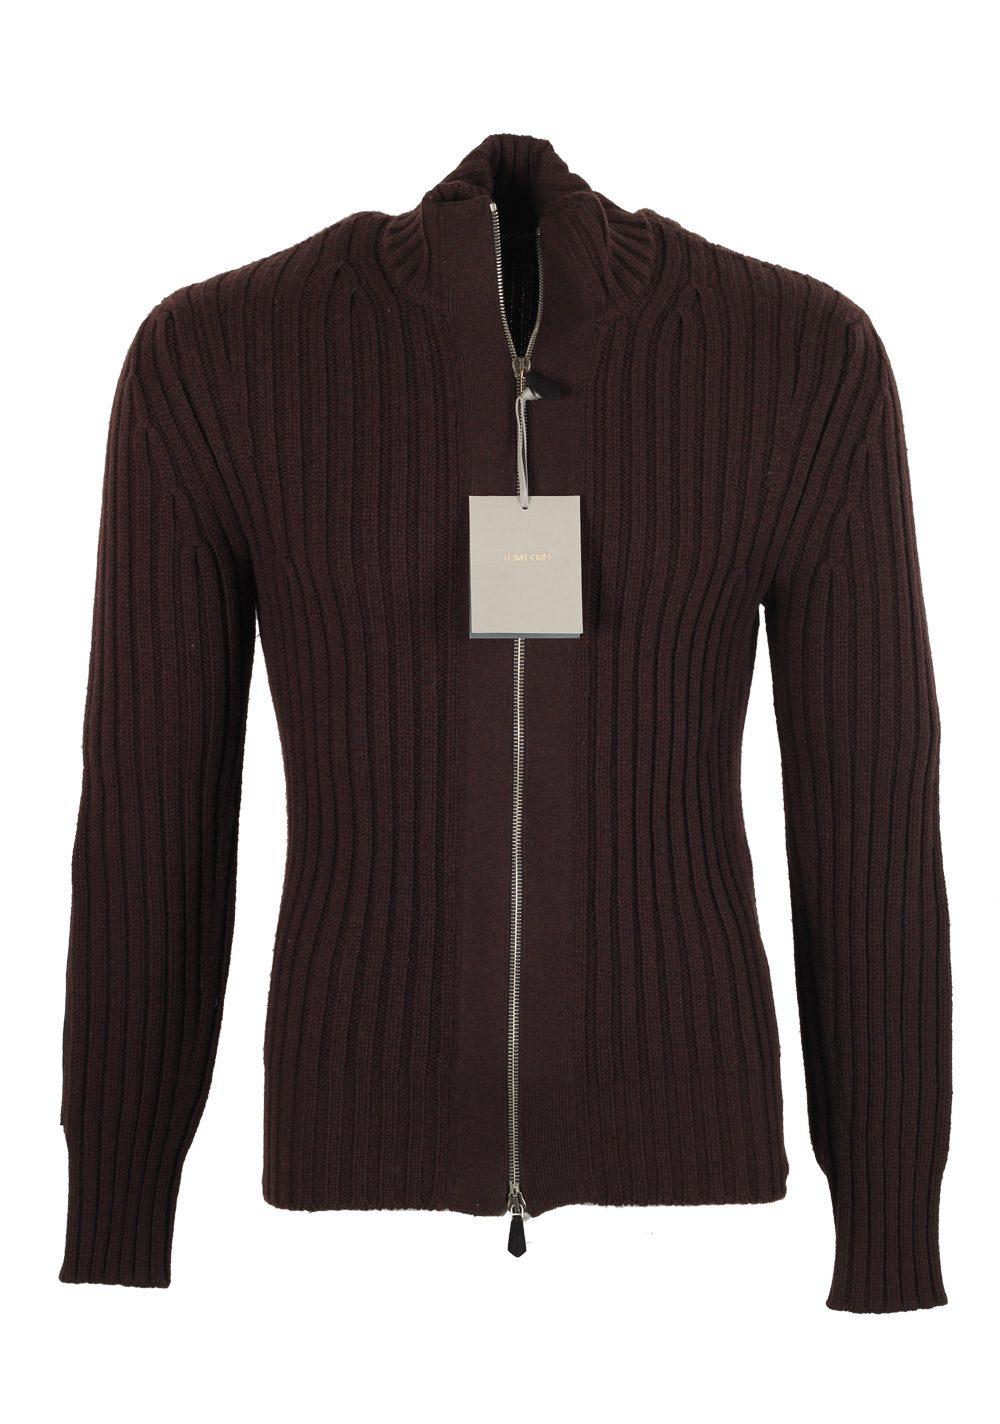 FORD Brown Zipper Cardigan Size 48 / 38R U.S. Wool Cashmere ...